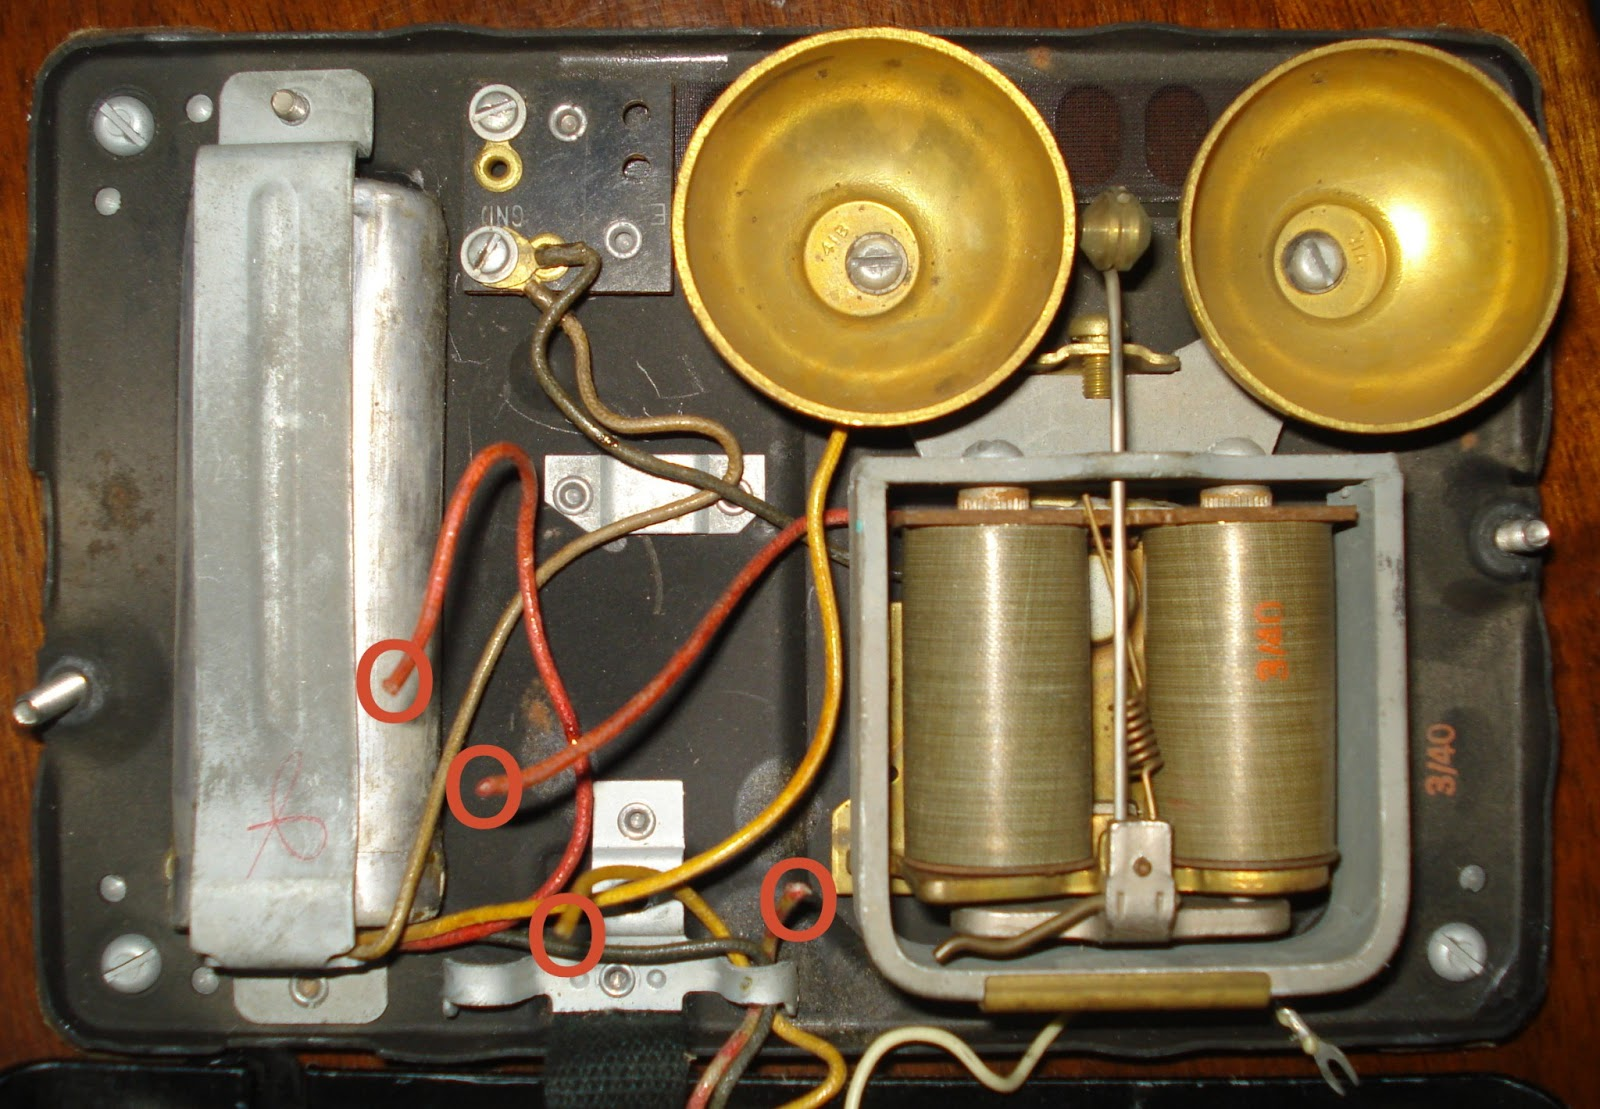 Can you help me to rewire this very old telephone